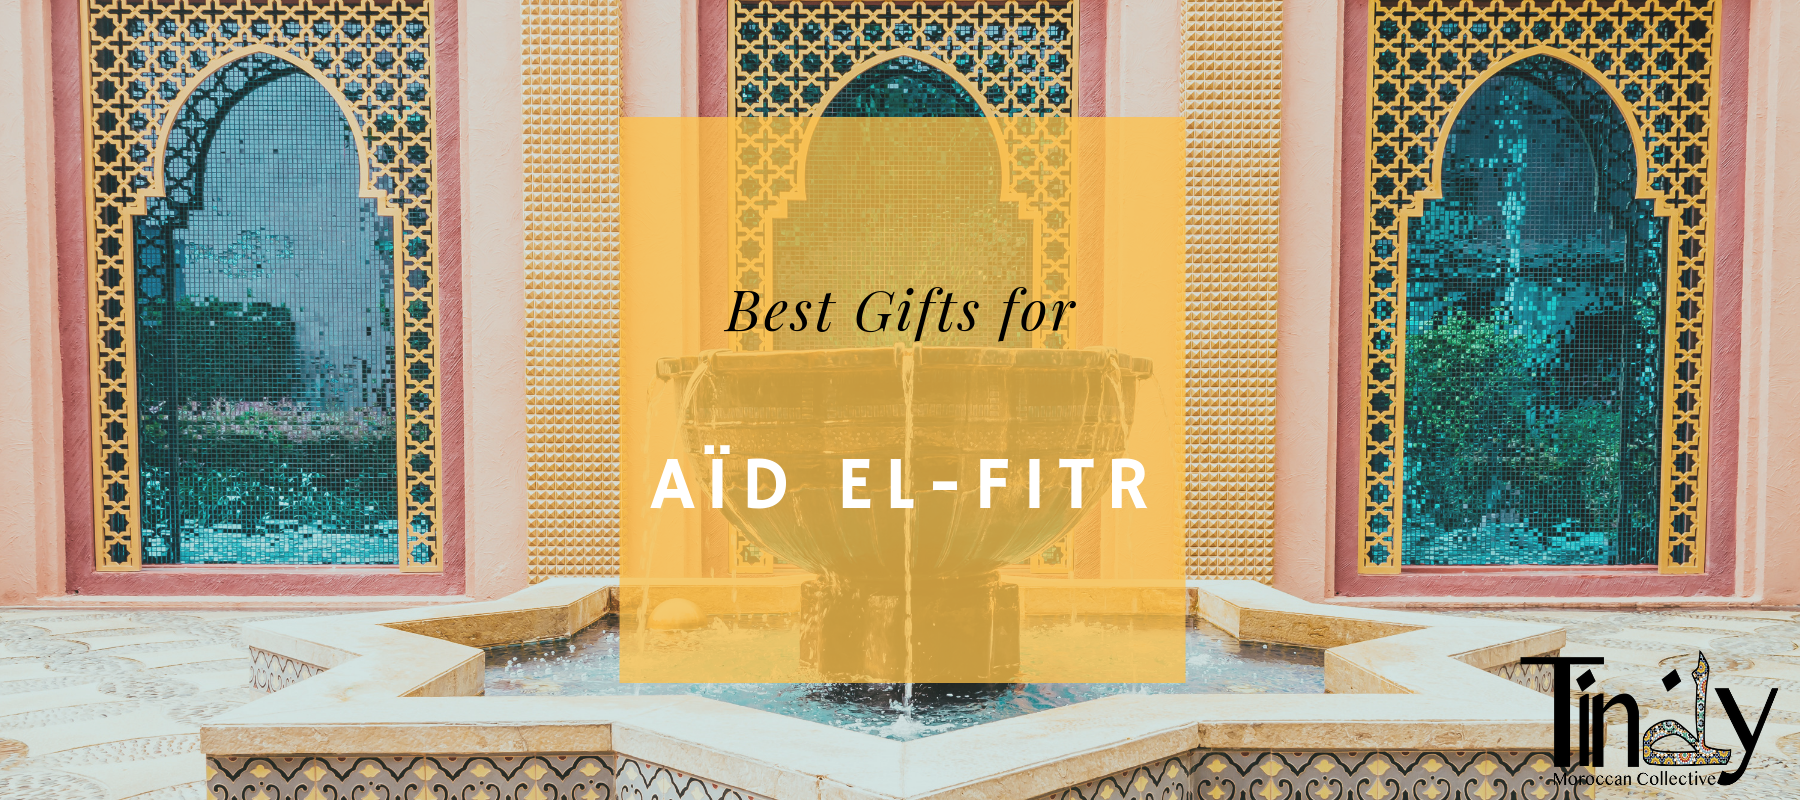 The best gifts to offer for Eid el-Fitr